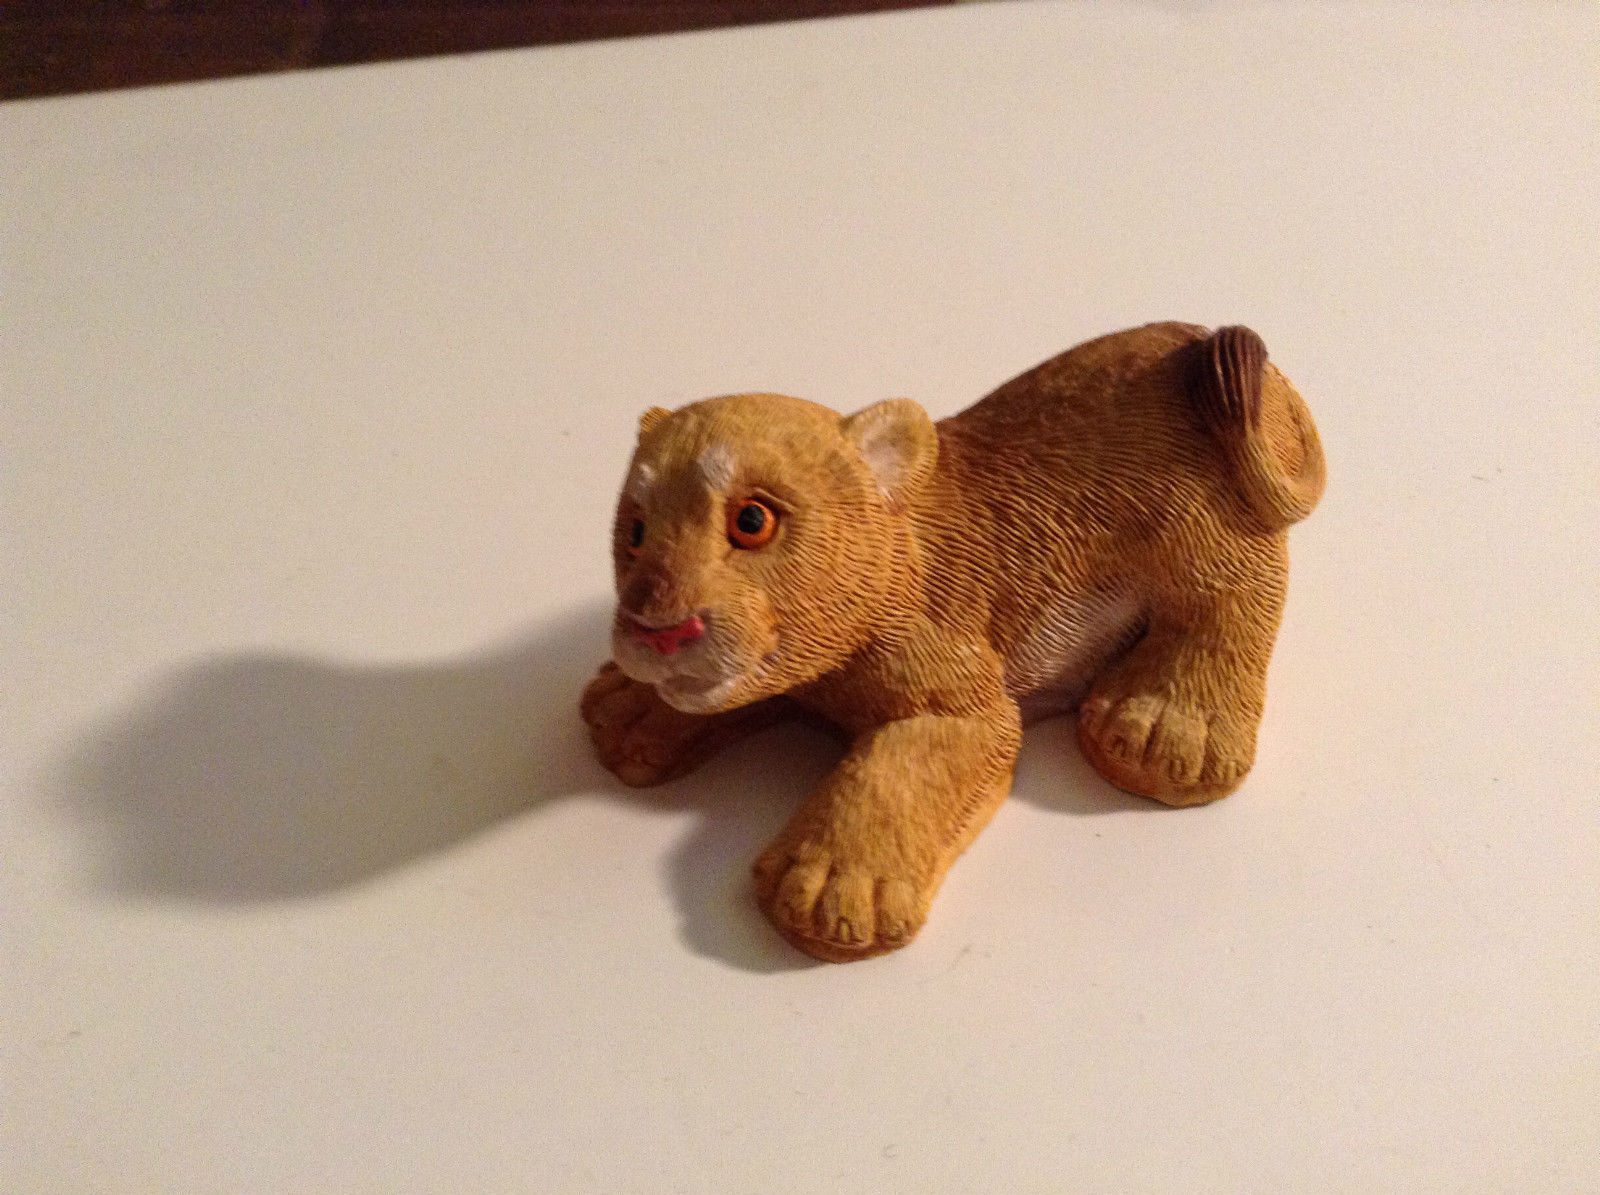 Brown Textured Baby Lion Figurine Display Decoration